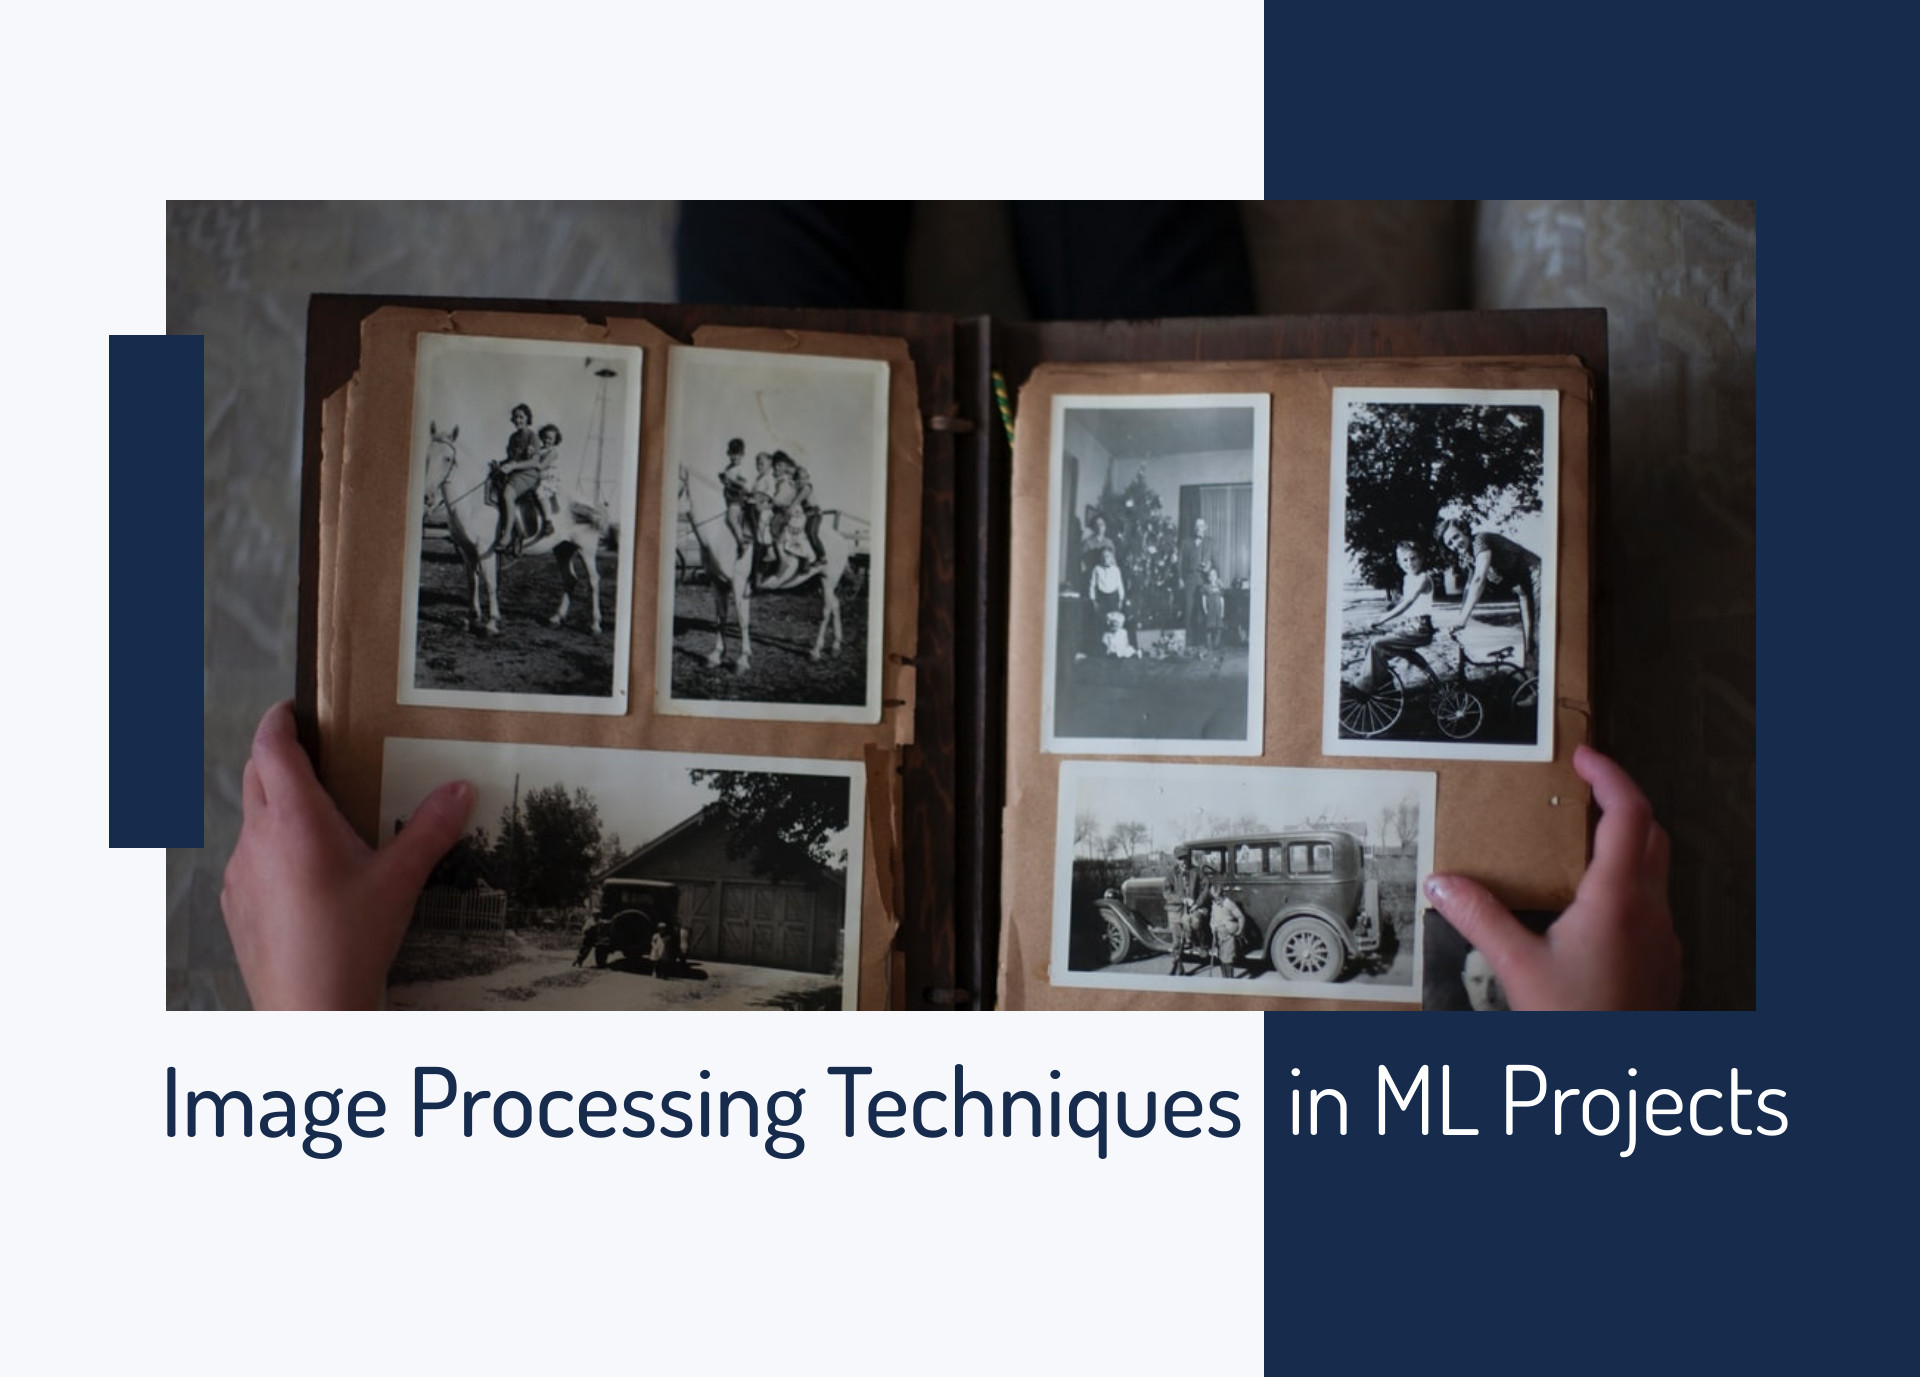 Image Processing Techniques That You Can Use in Machine Learning Projects